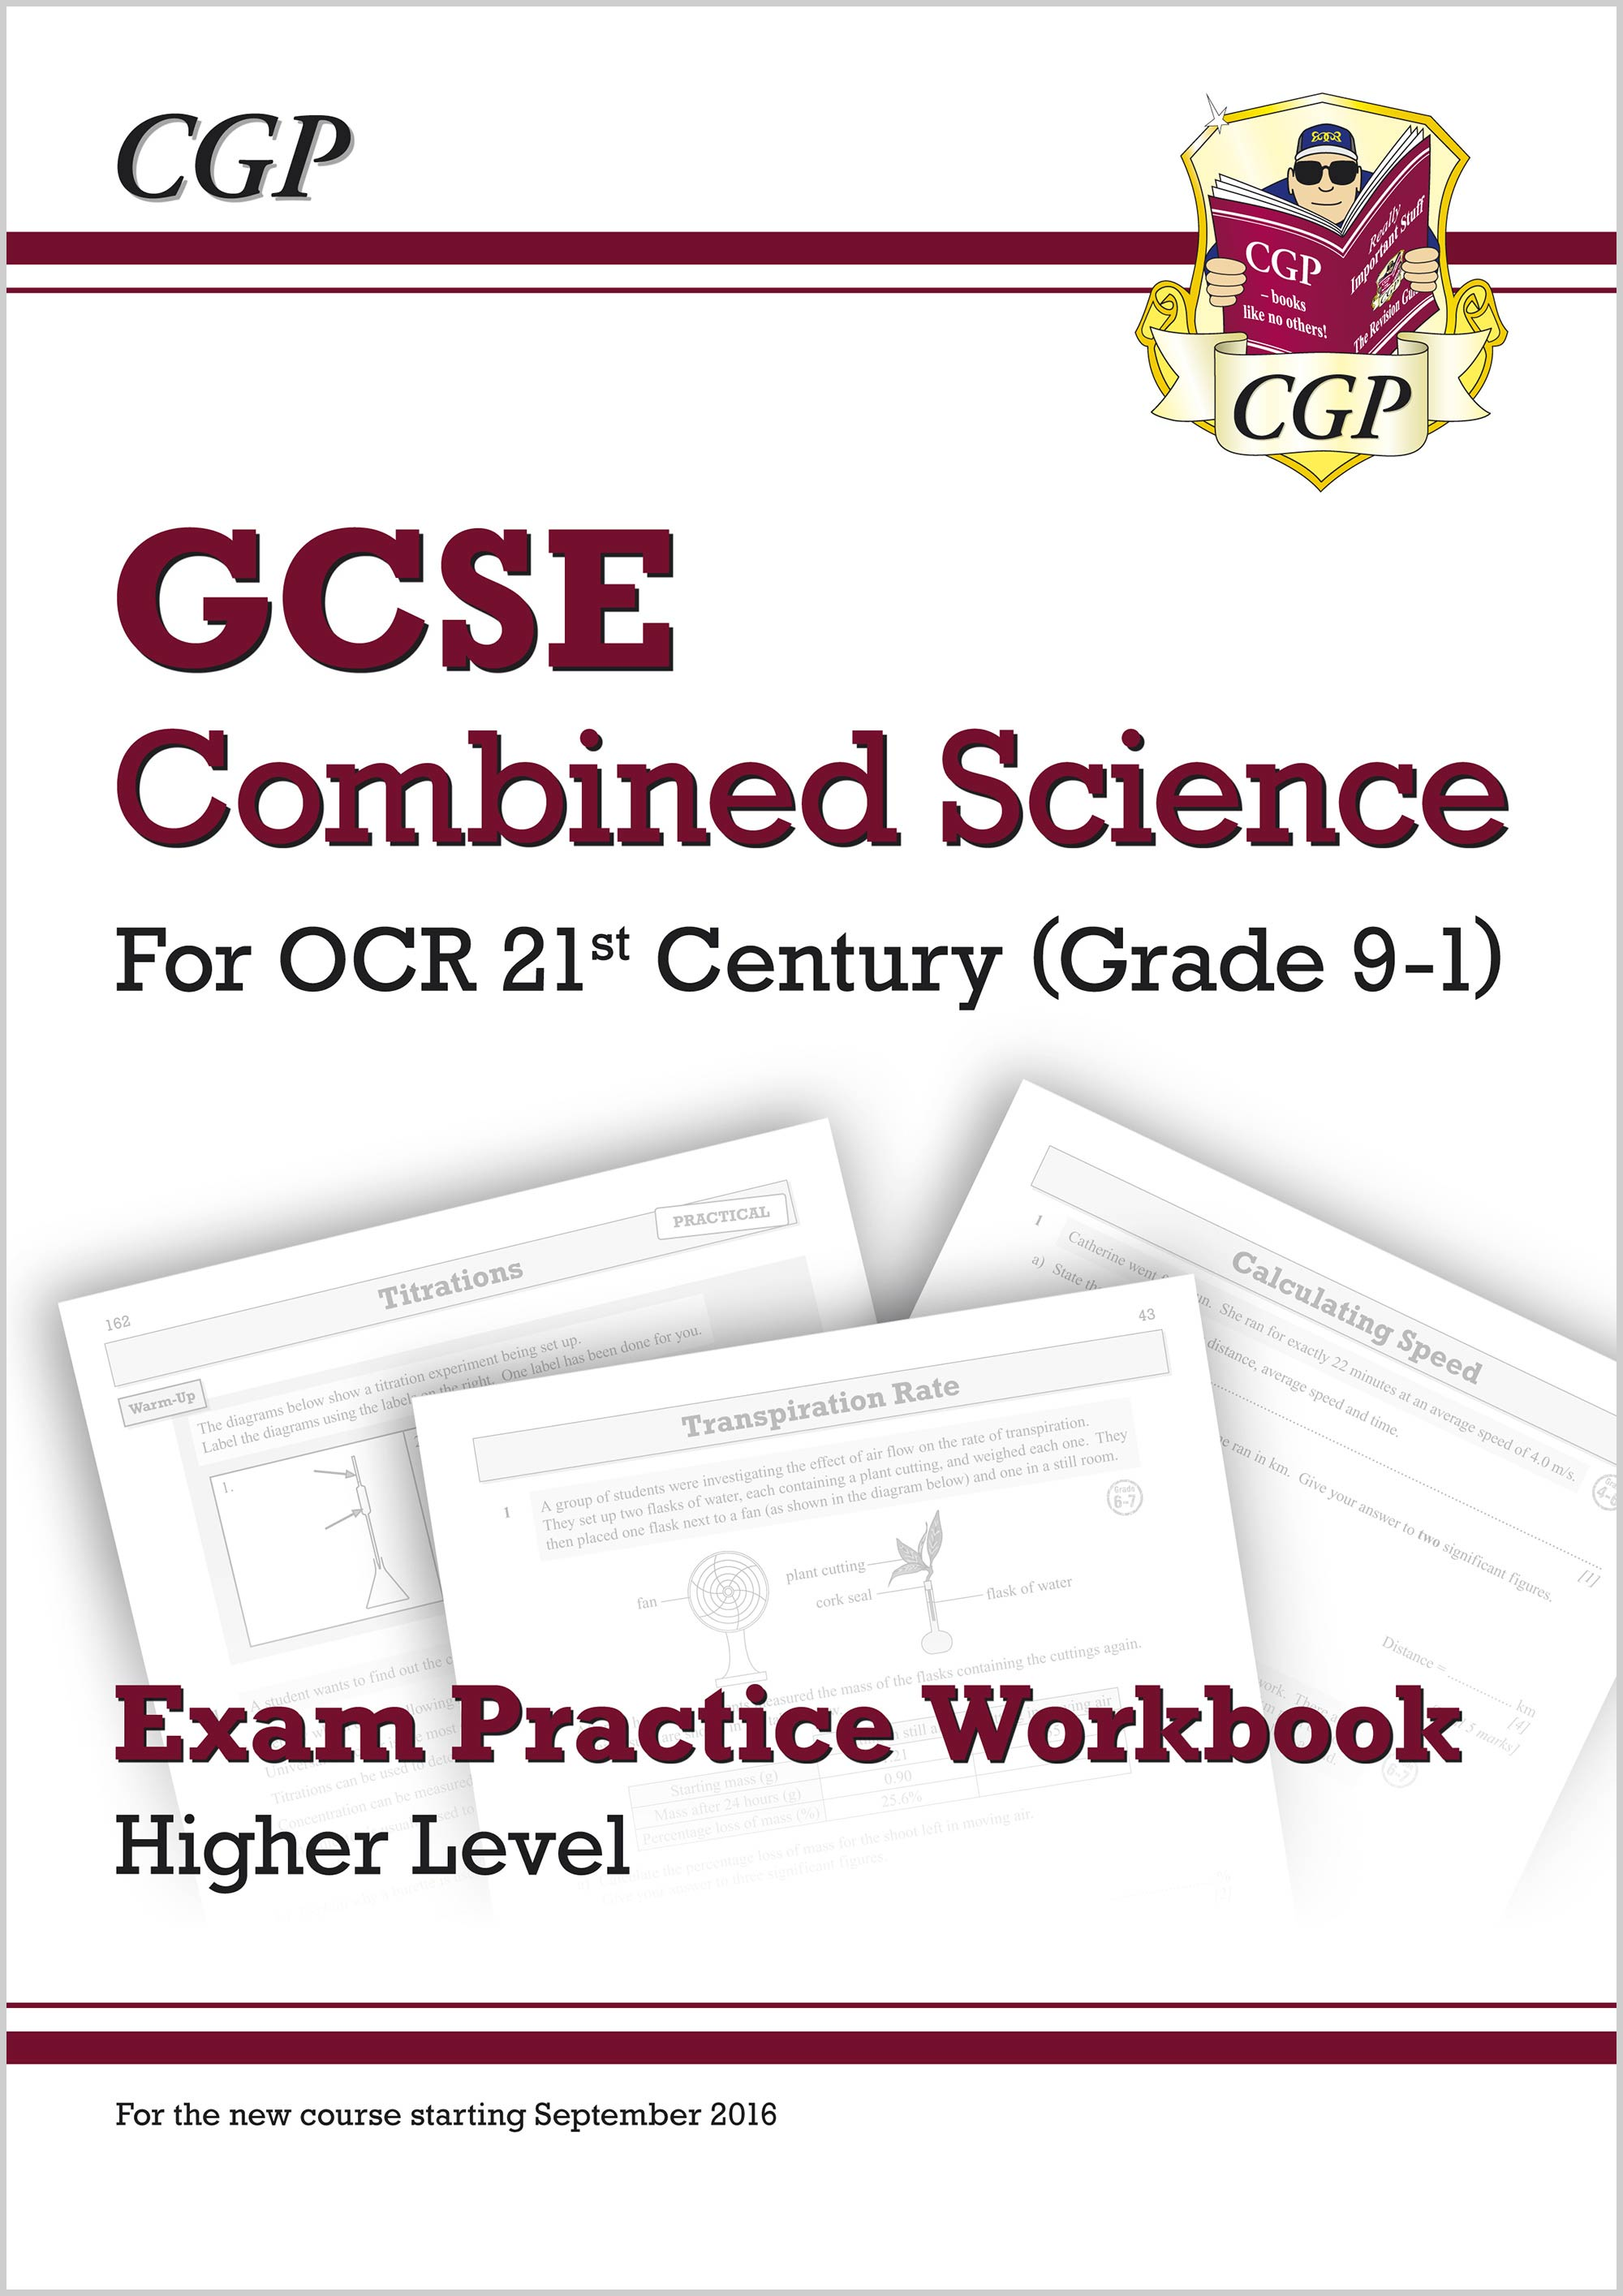 S2HQ41 - Grade 9-1 GCSE Combined Science: OCR 21st Century Exam Practice Workbook - Higher